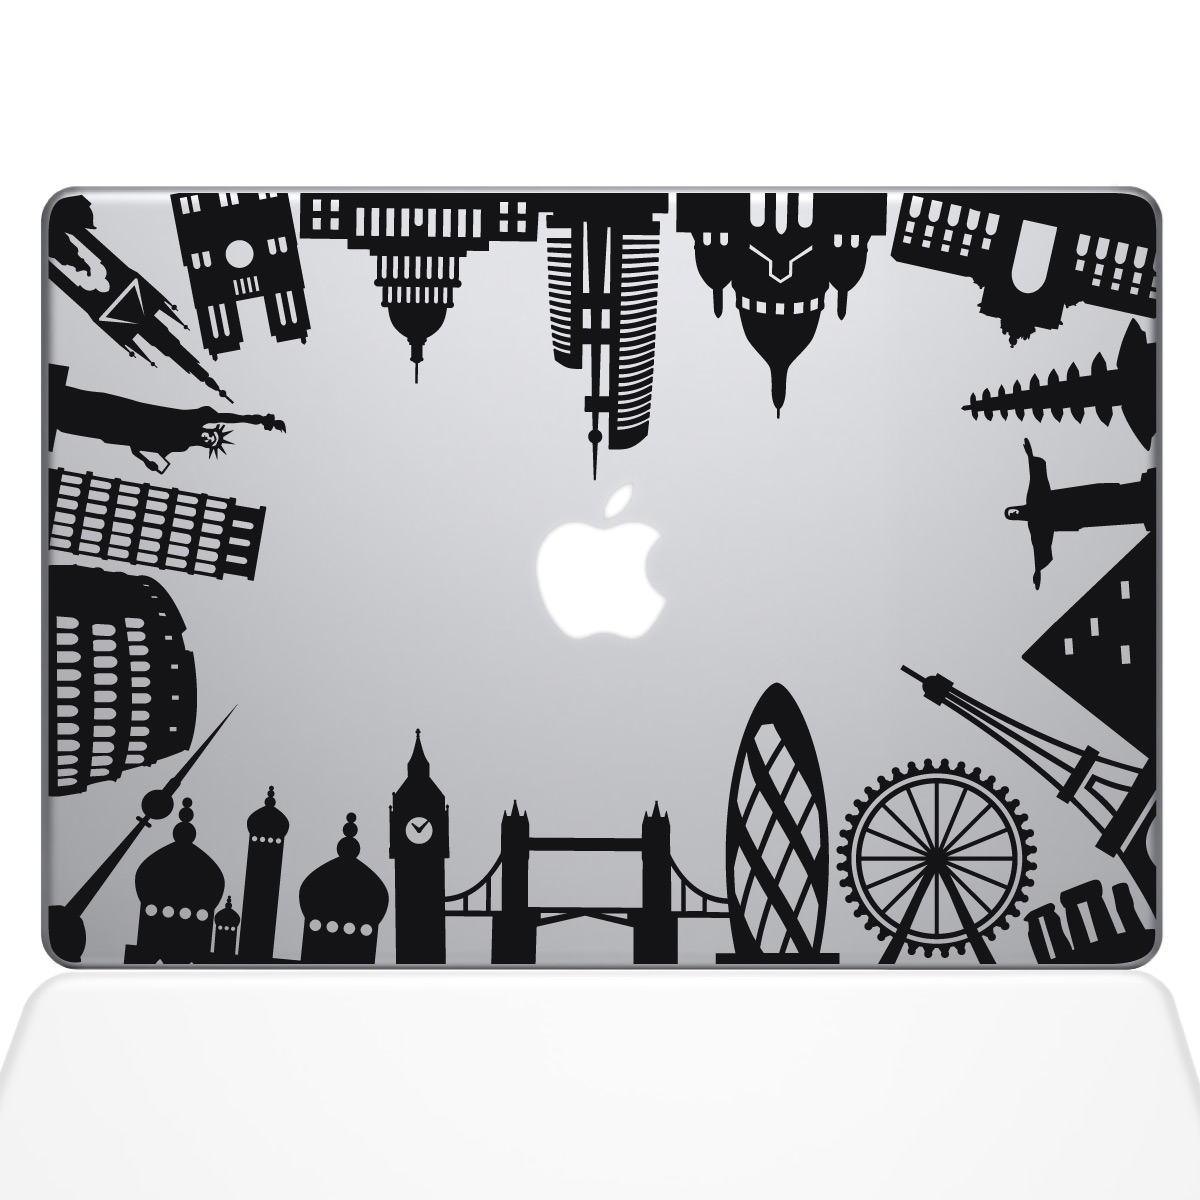 Around the world monuments macbook decal the decal guru gumiabroncs Gallery